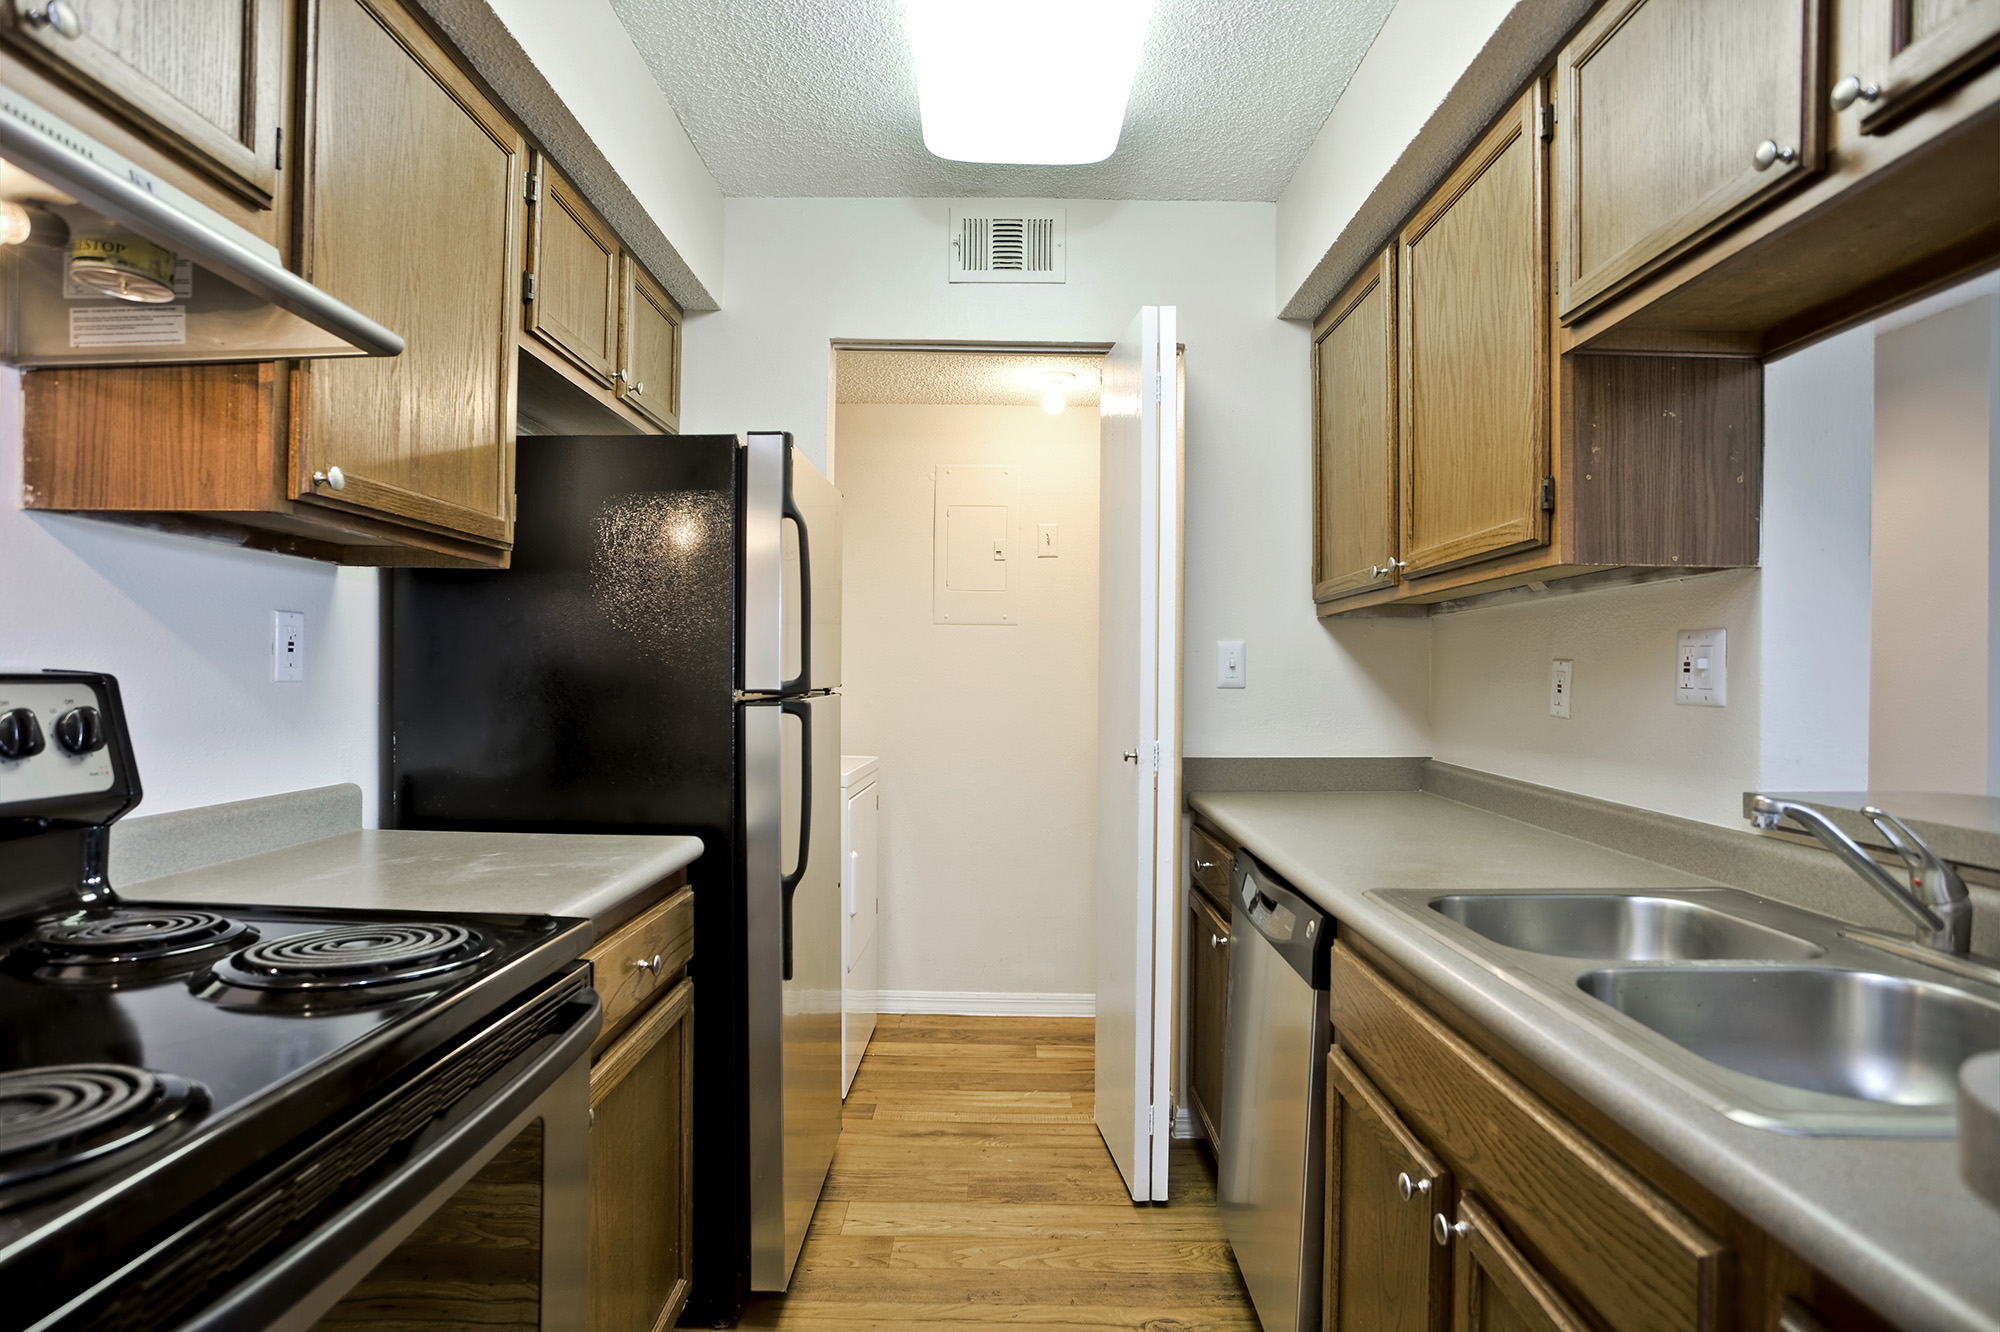 CharlestonLandings-Rental-Apartment-Brandon-Tampa-Florida-Bedrooms-Kitchen.jpg